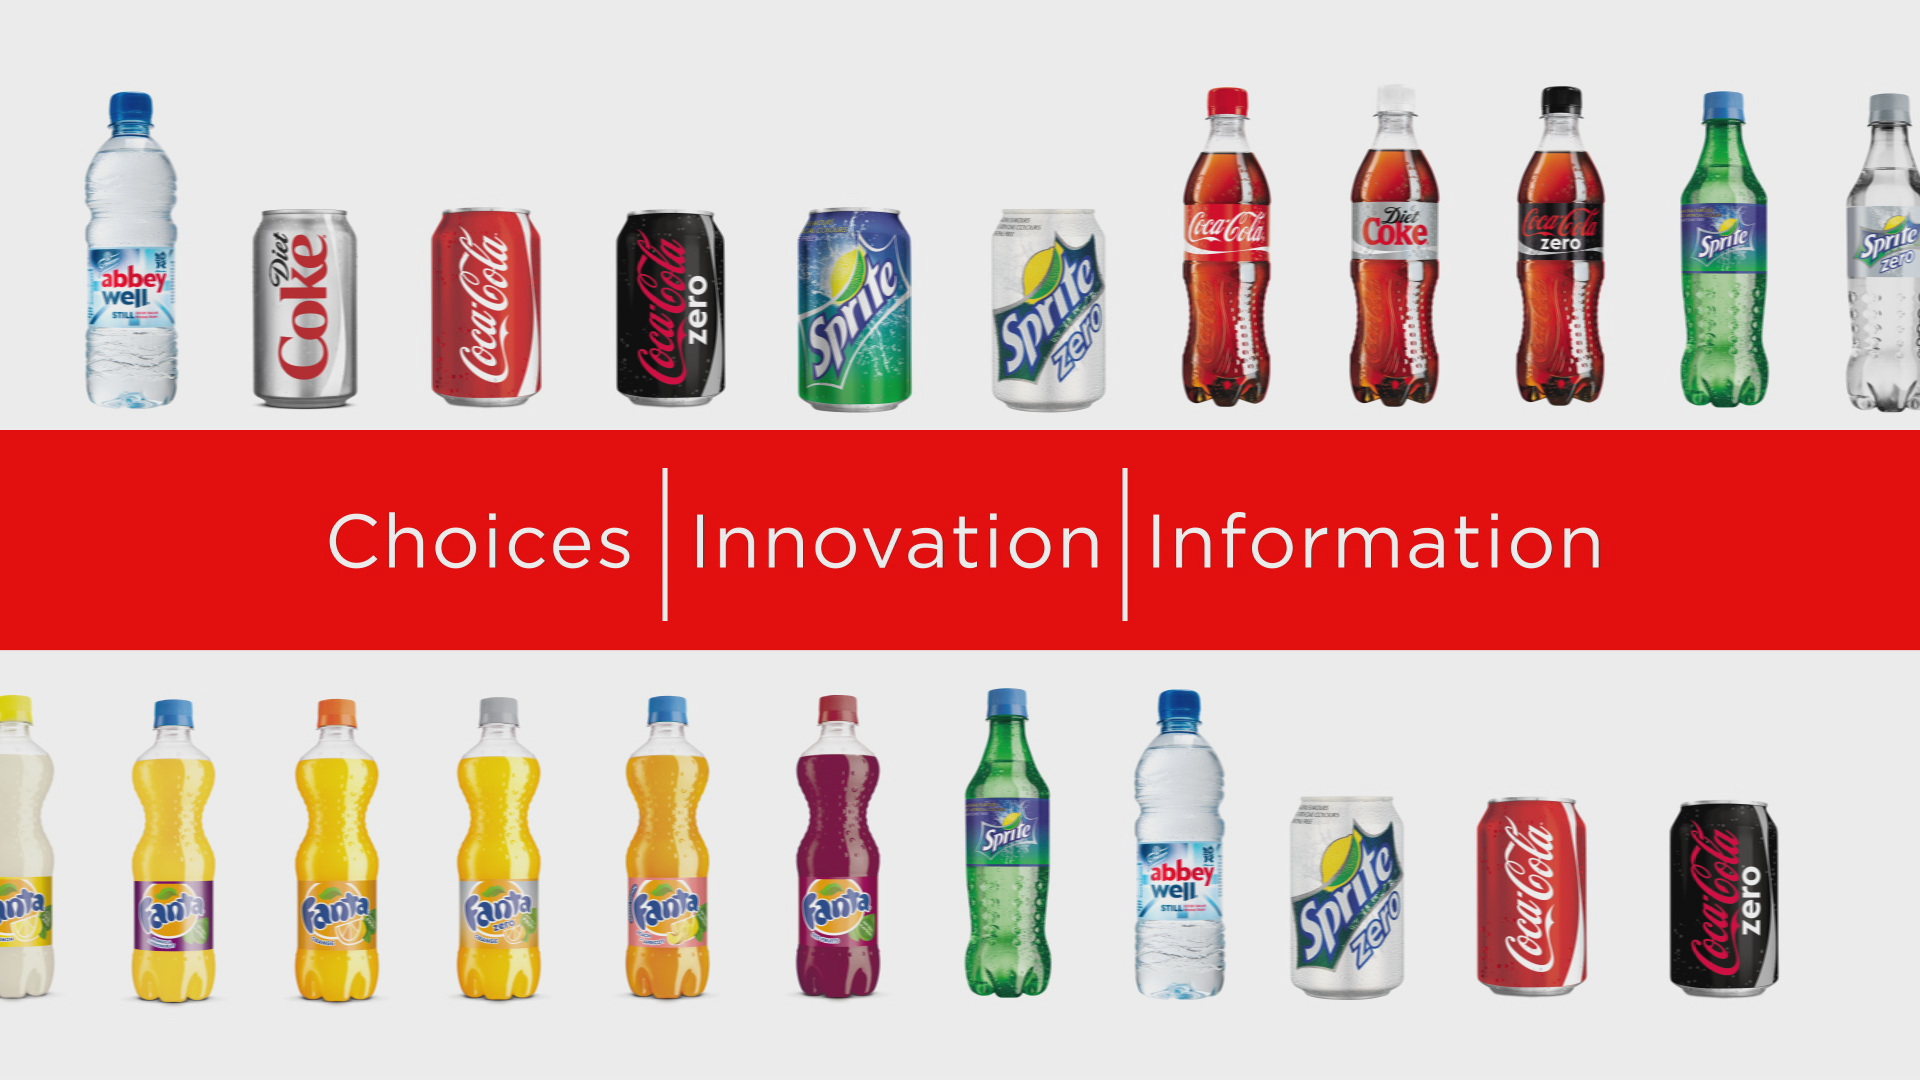 the coca cola crisis The coca-cola company is the world's number one maker of soft drinks, selling 13 billion beverage servings every day coca-cola's red and white trademark is probably the best-known brand symbol in the world.